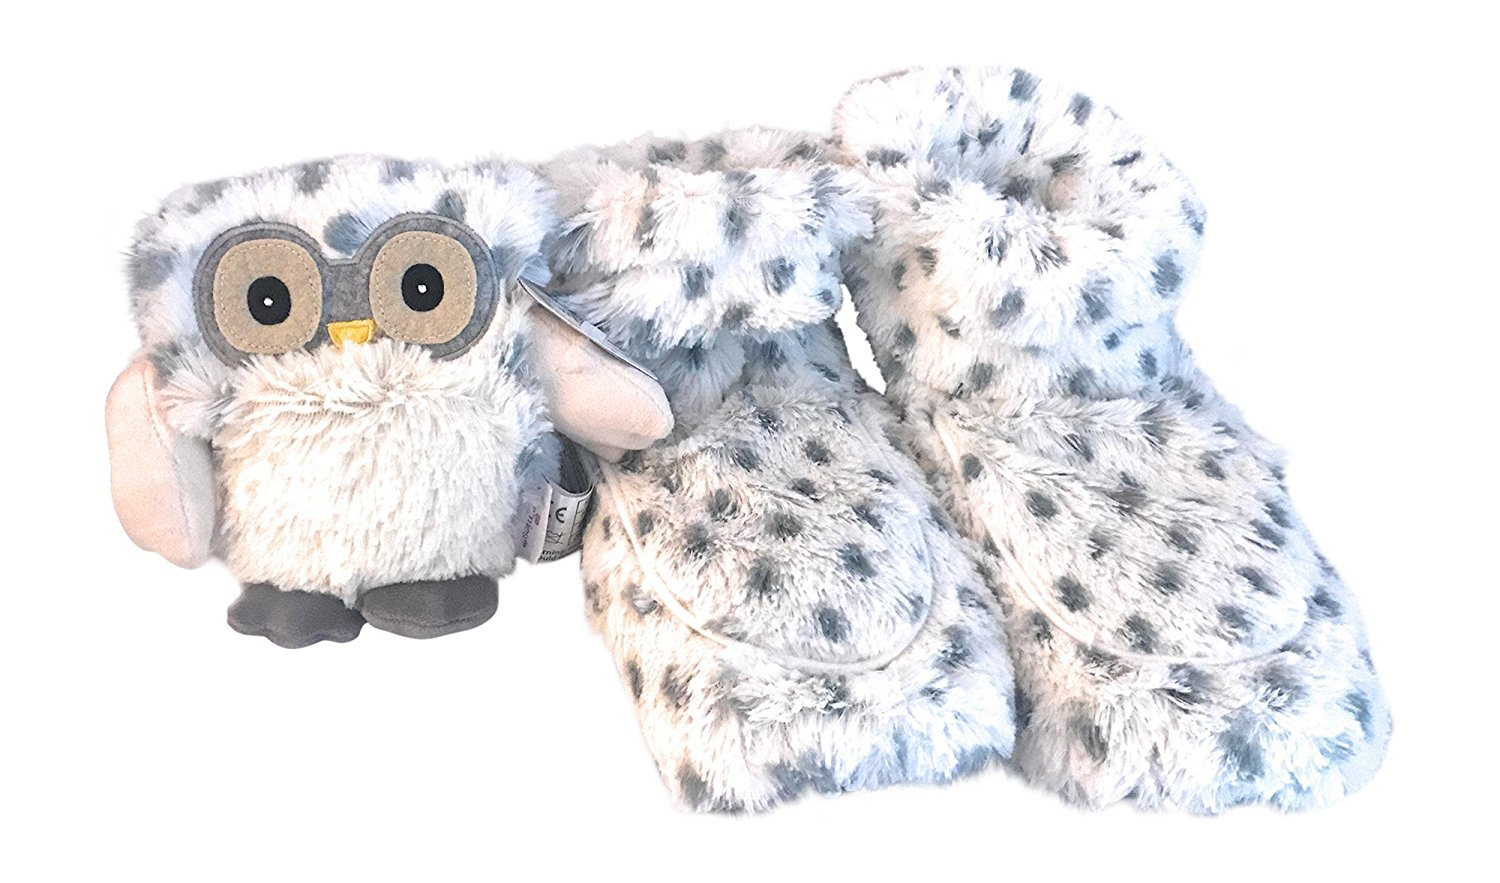 db7cfe0e7c9 Get Quotations · Warmies Intelex Cozy Boot Slippers (Snowy) Microwaveable  and Snowy Owl Heated Microwavable Plush Jr